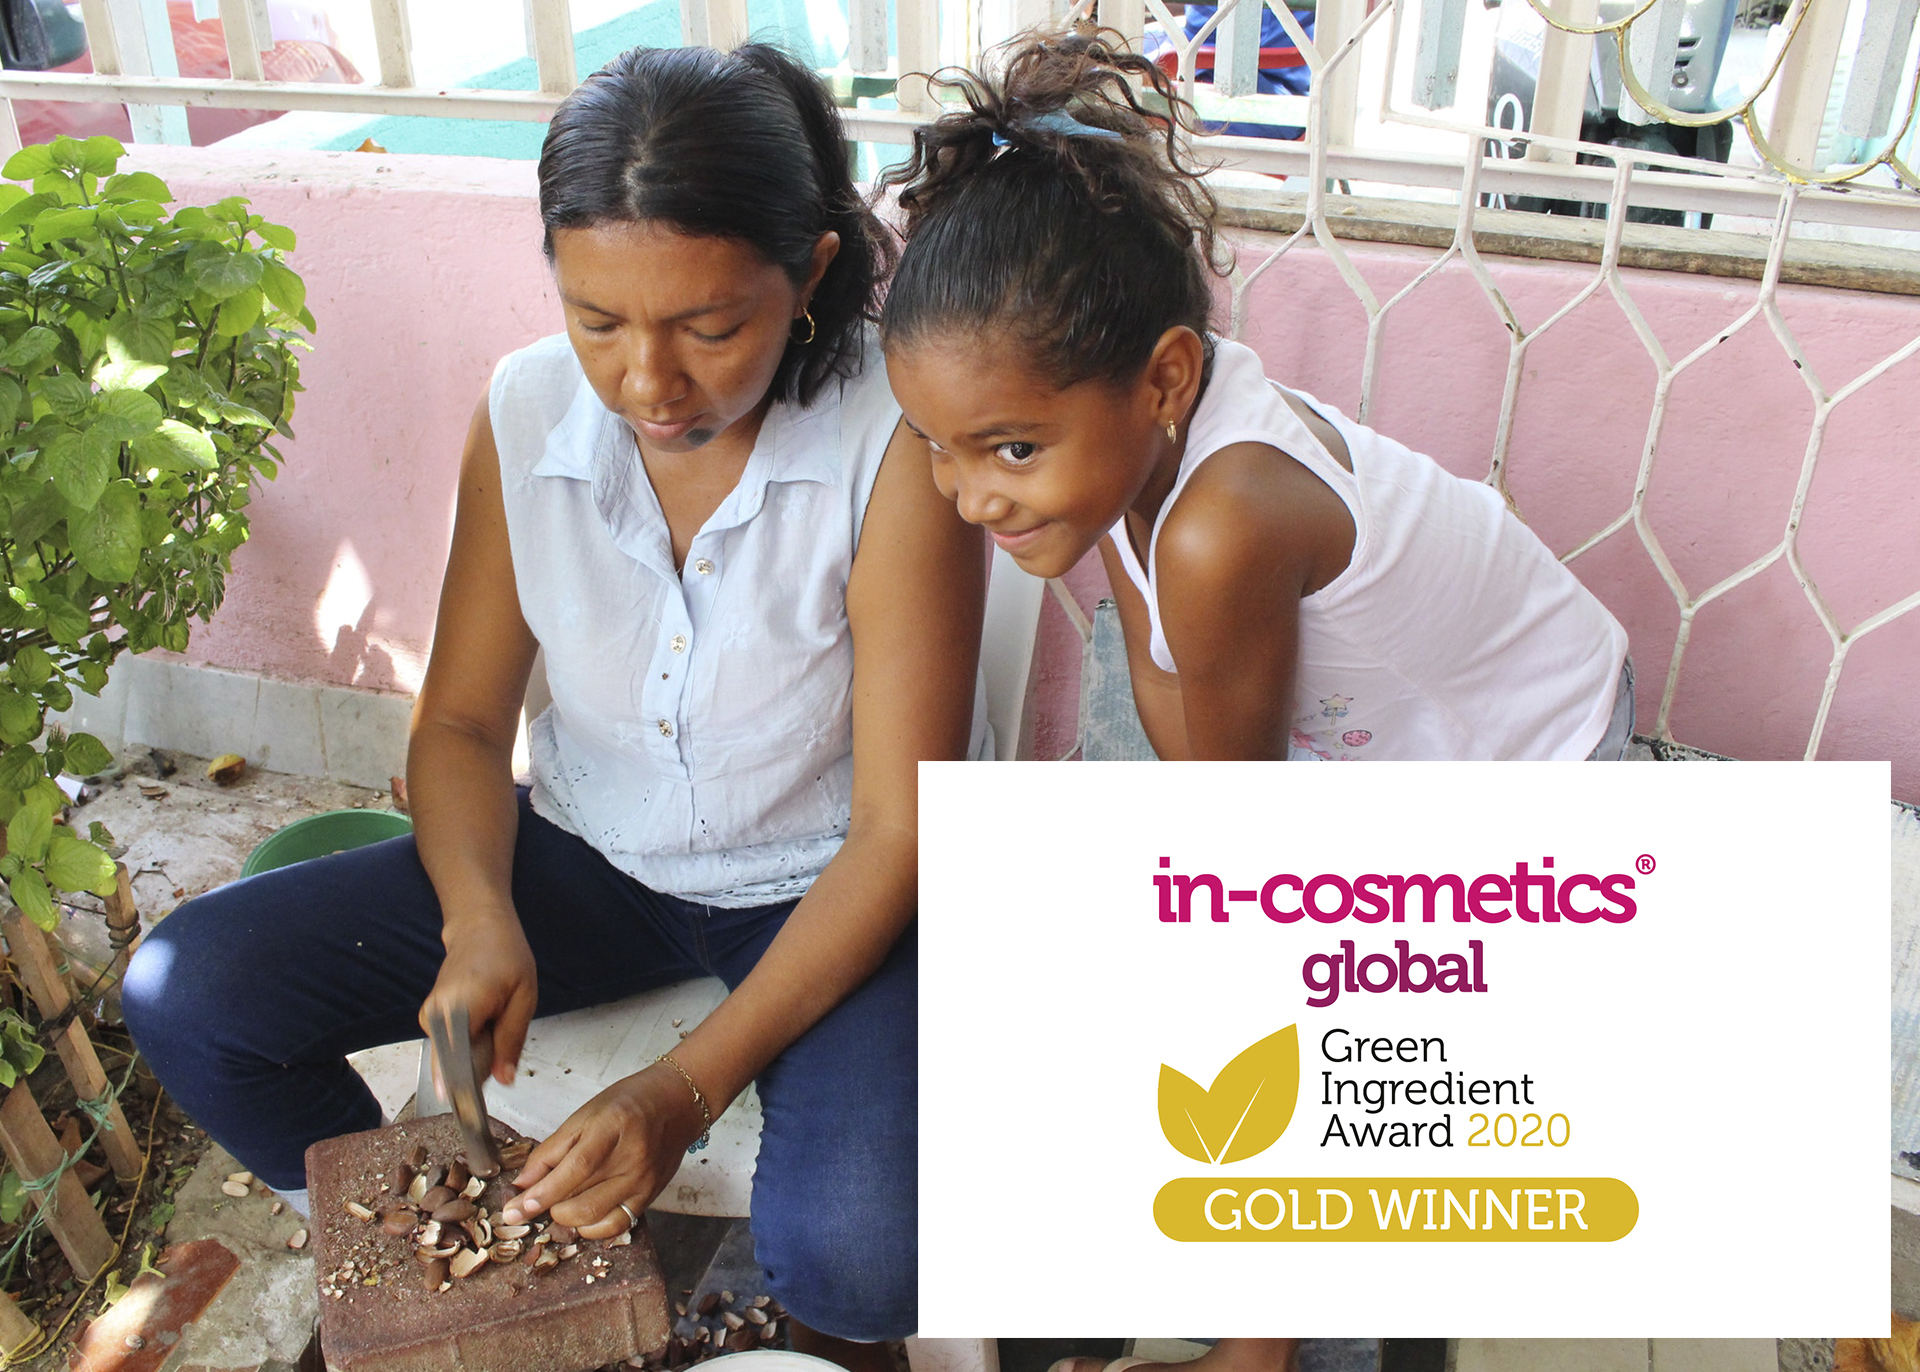 Paradiesnussöl gewinnt Gold beim in-cosmetics® global Green Ingredient Award 2020!